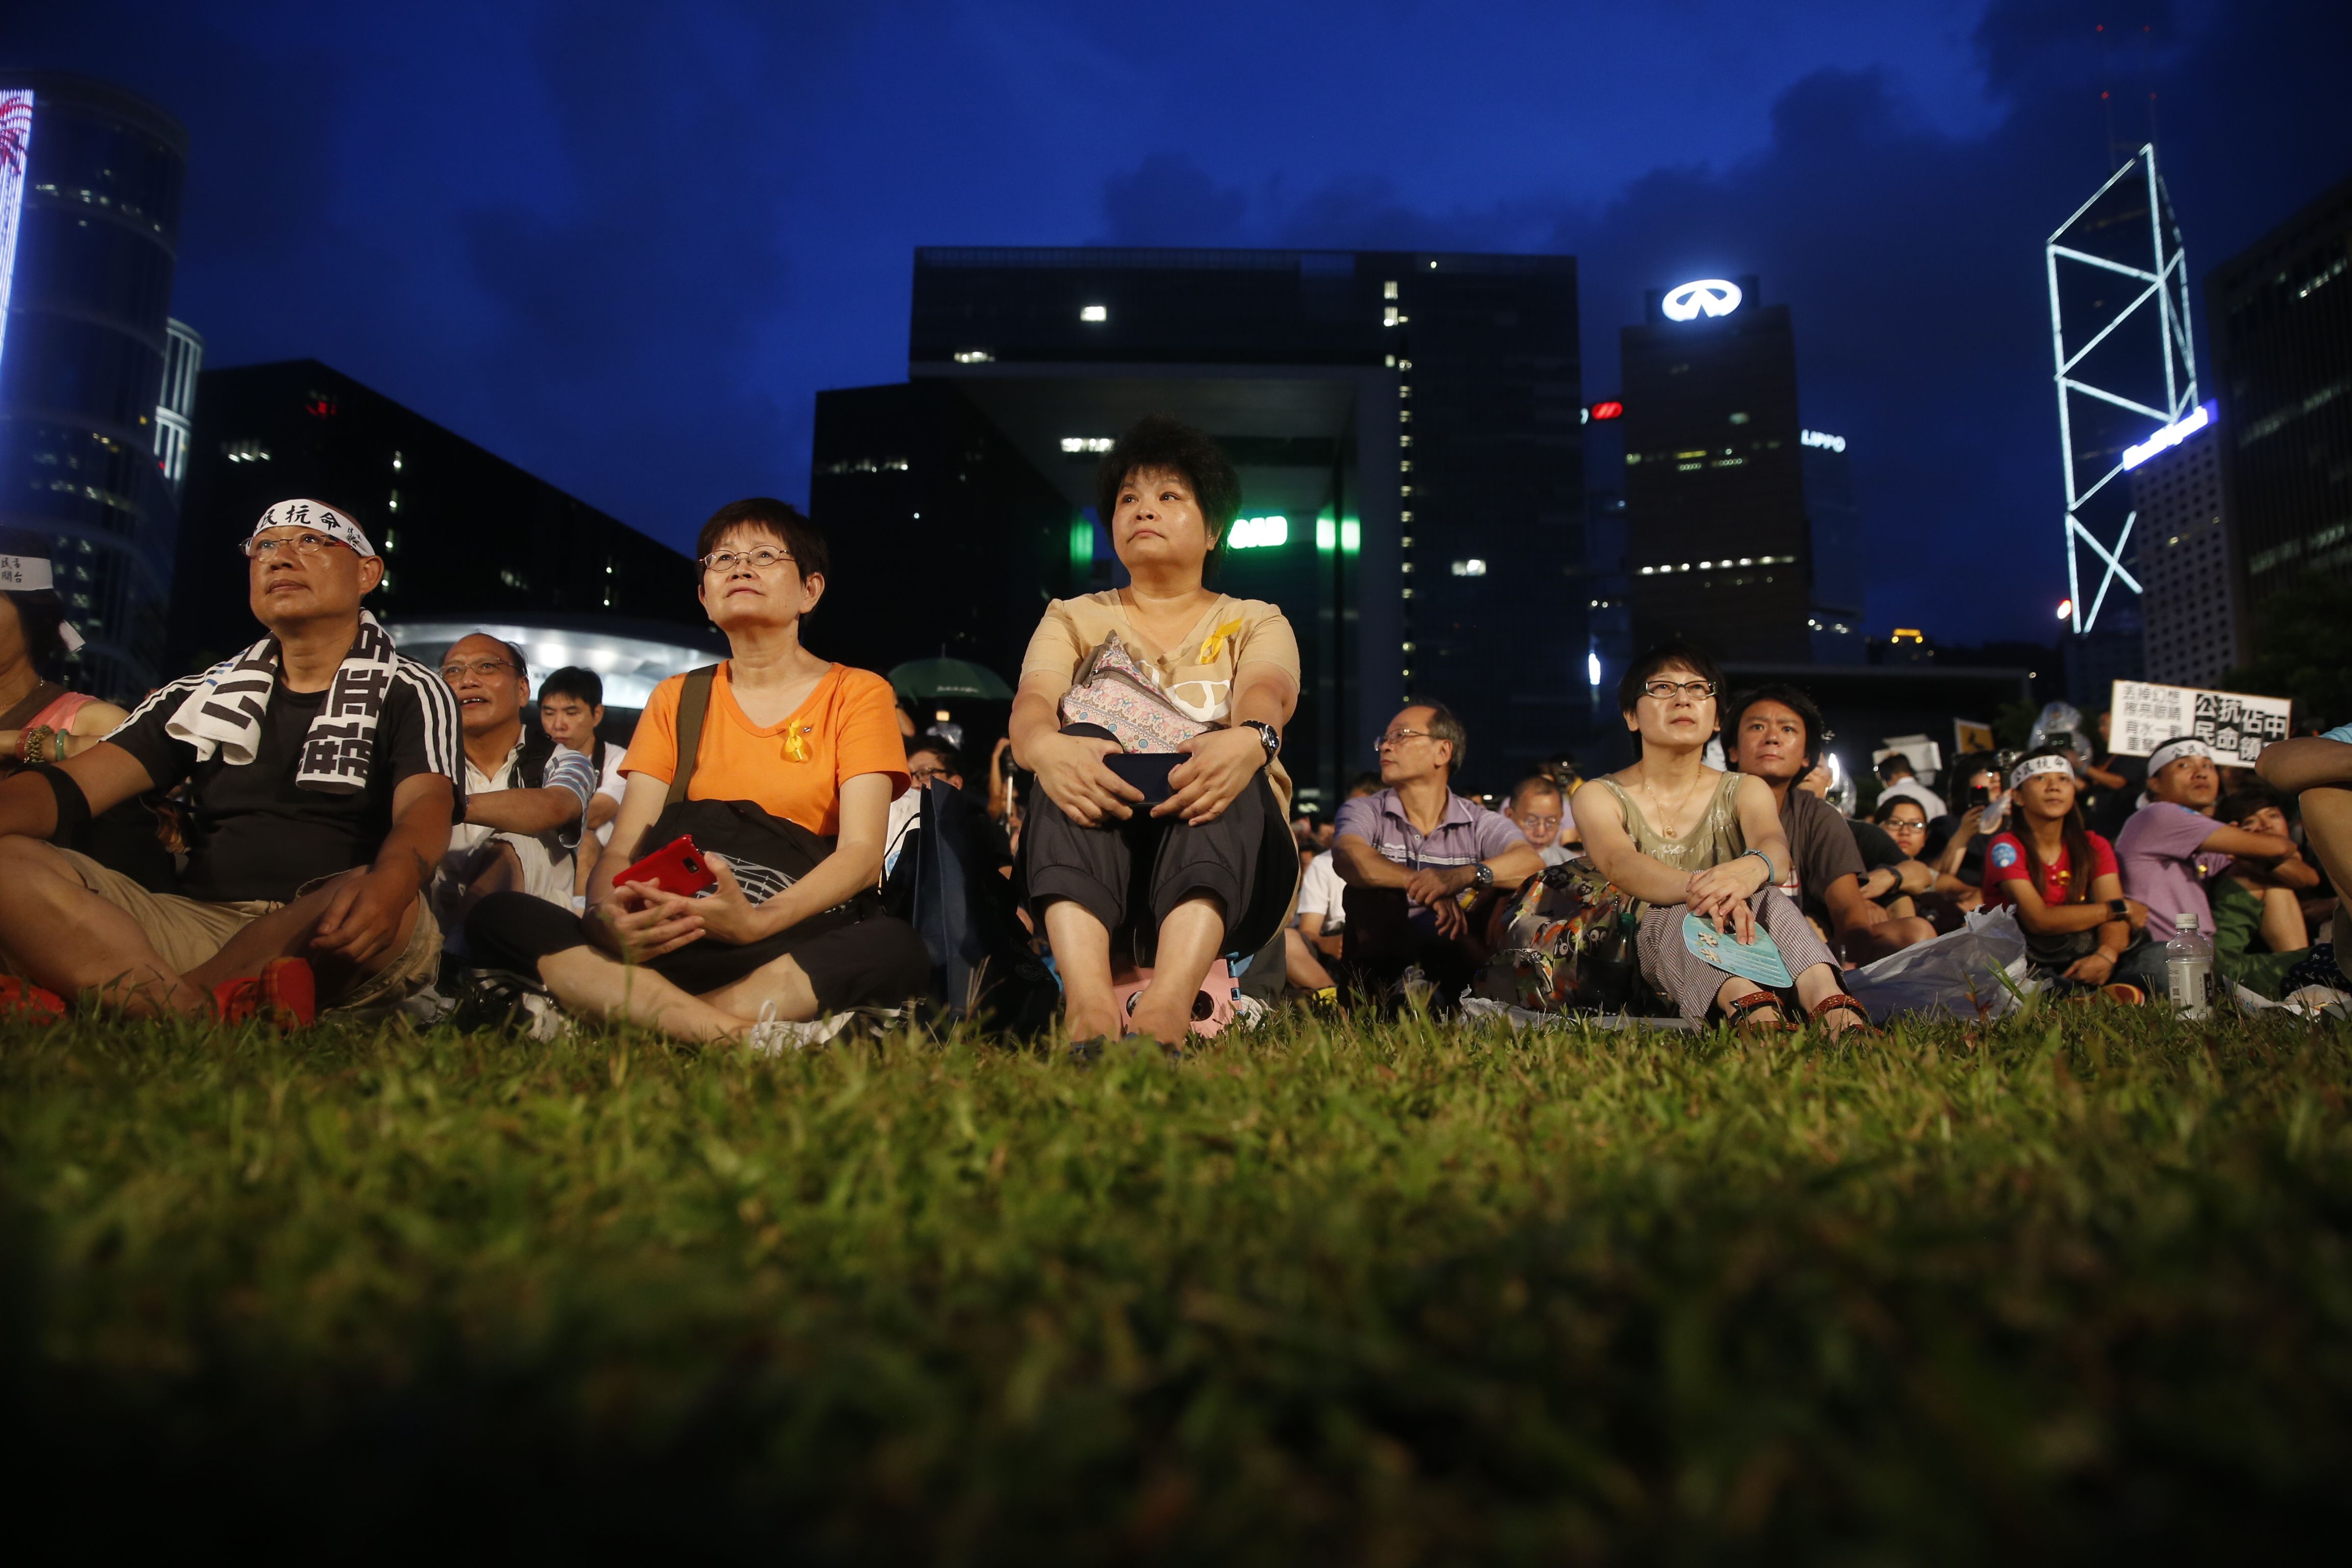 Pro-democracy activists gather during a rally organized by activist group Occupy Central With Love and Peace (OCLP) outside the offices of Chief Executive Leung Chun-ying in Hong Kong, China, on Sunday, Aug. 31, 2014.